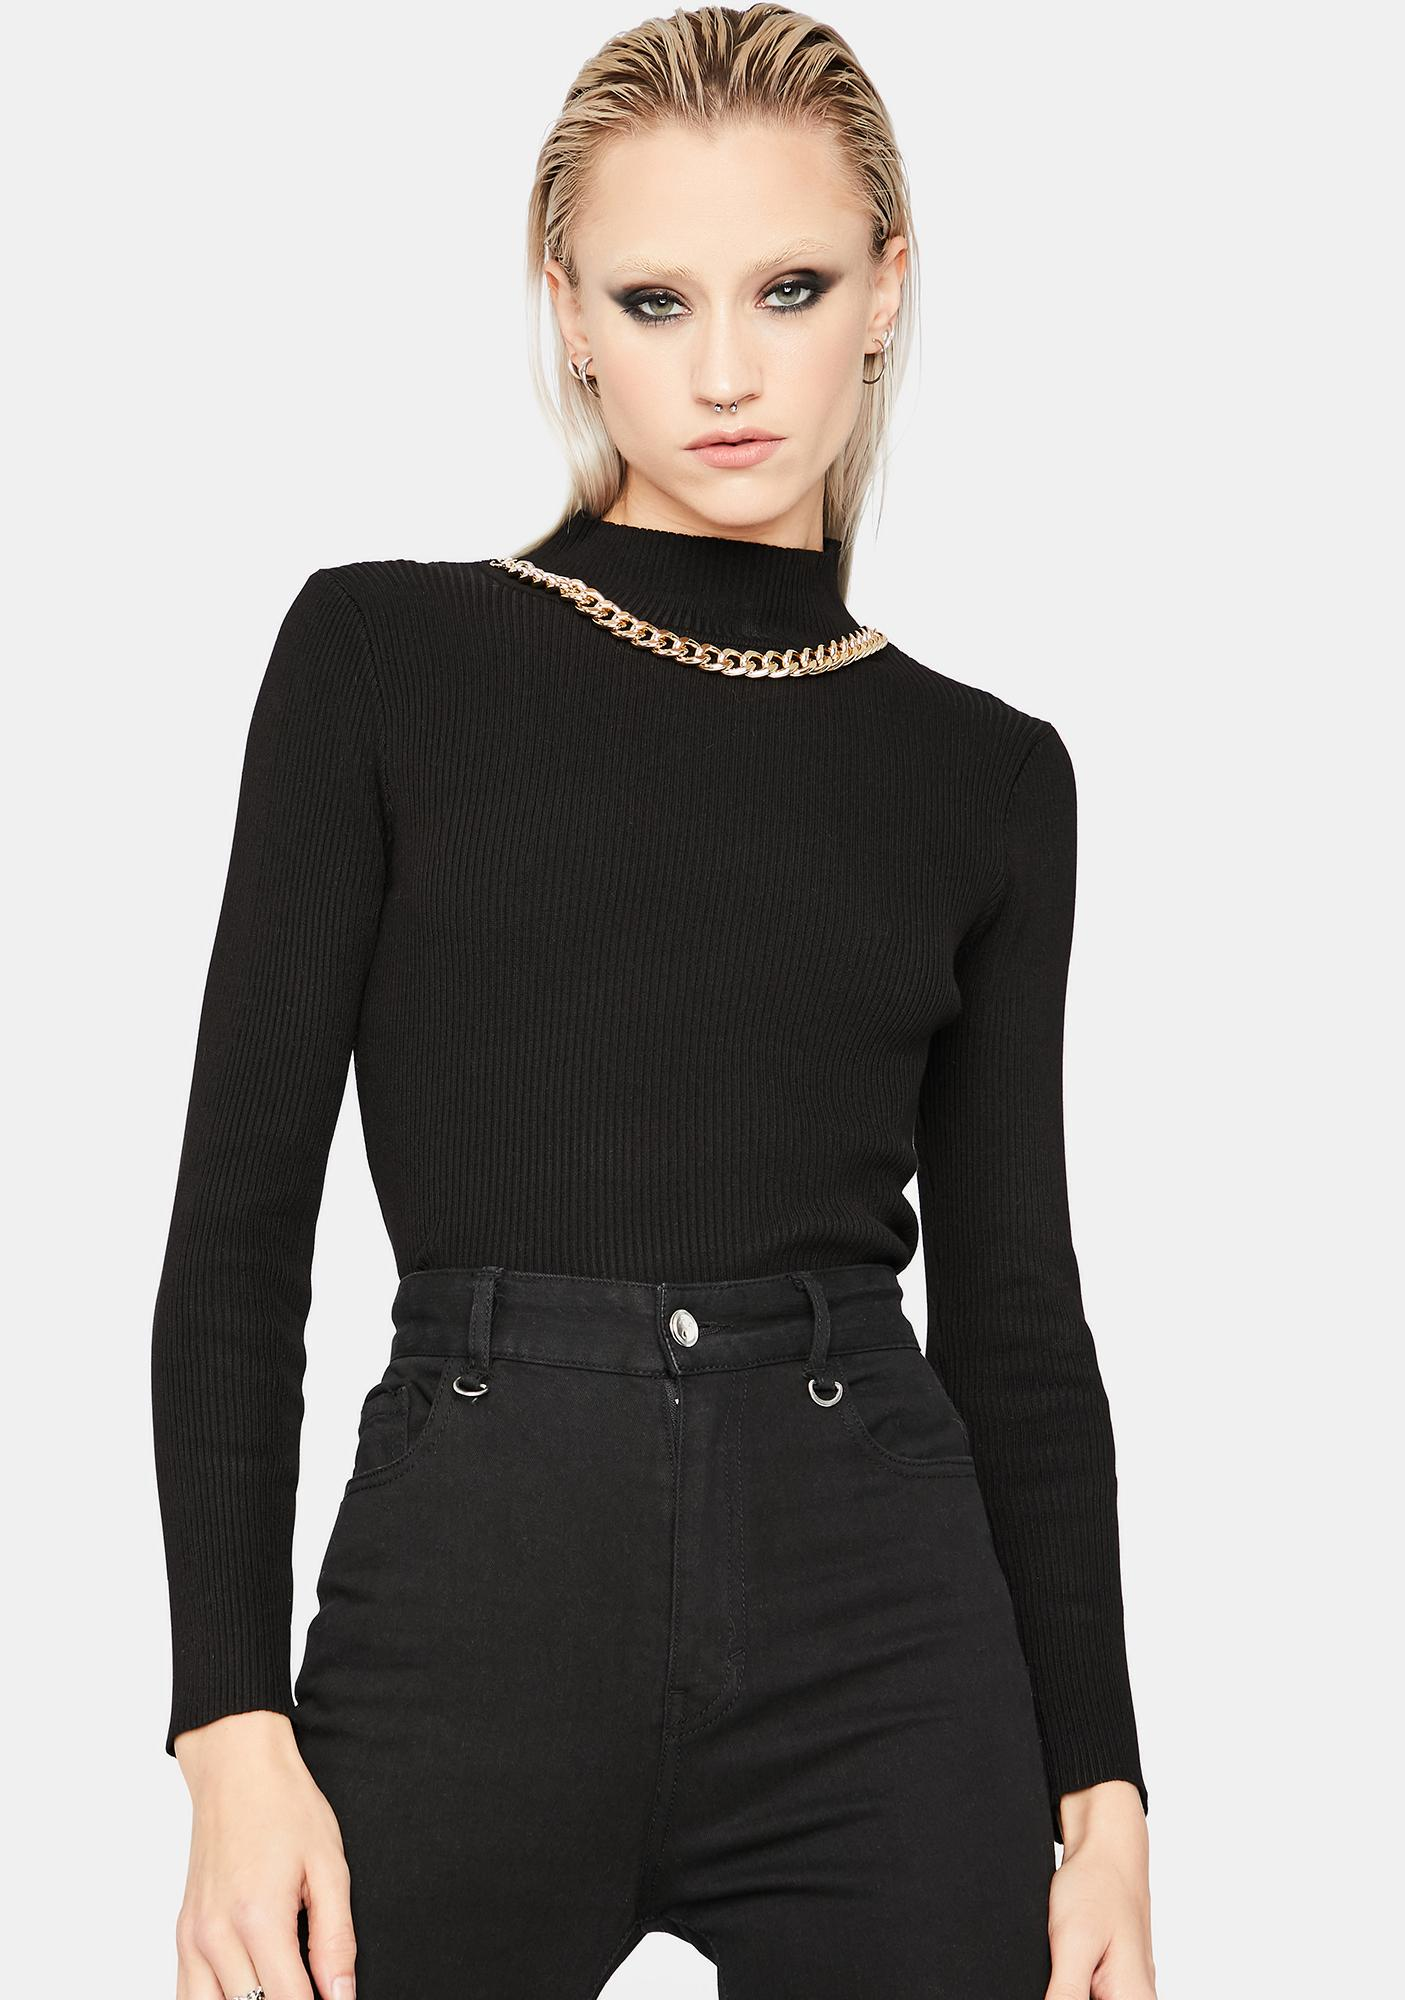 Wicked Bossy Babe Chain Mock Neck Top